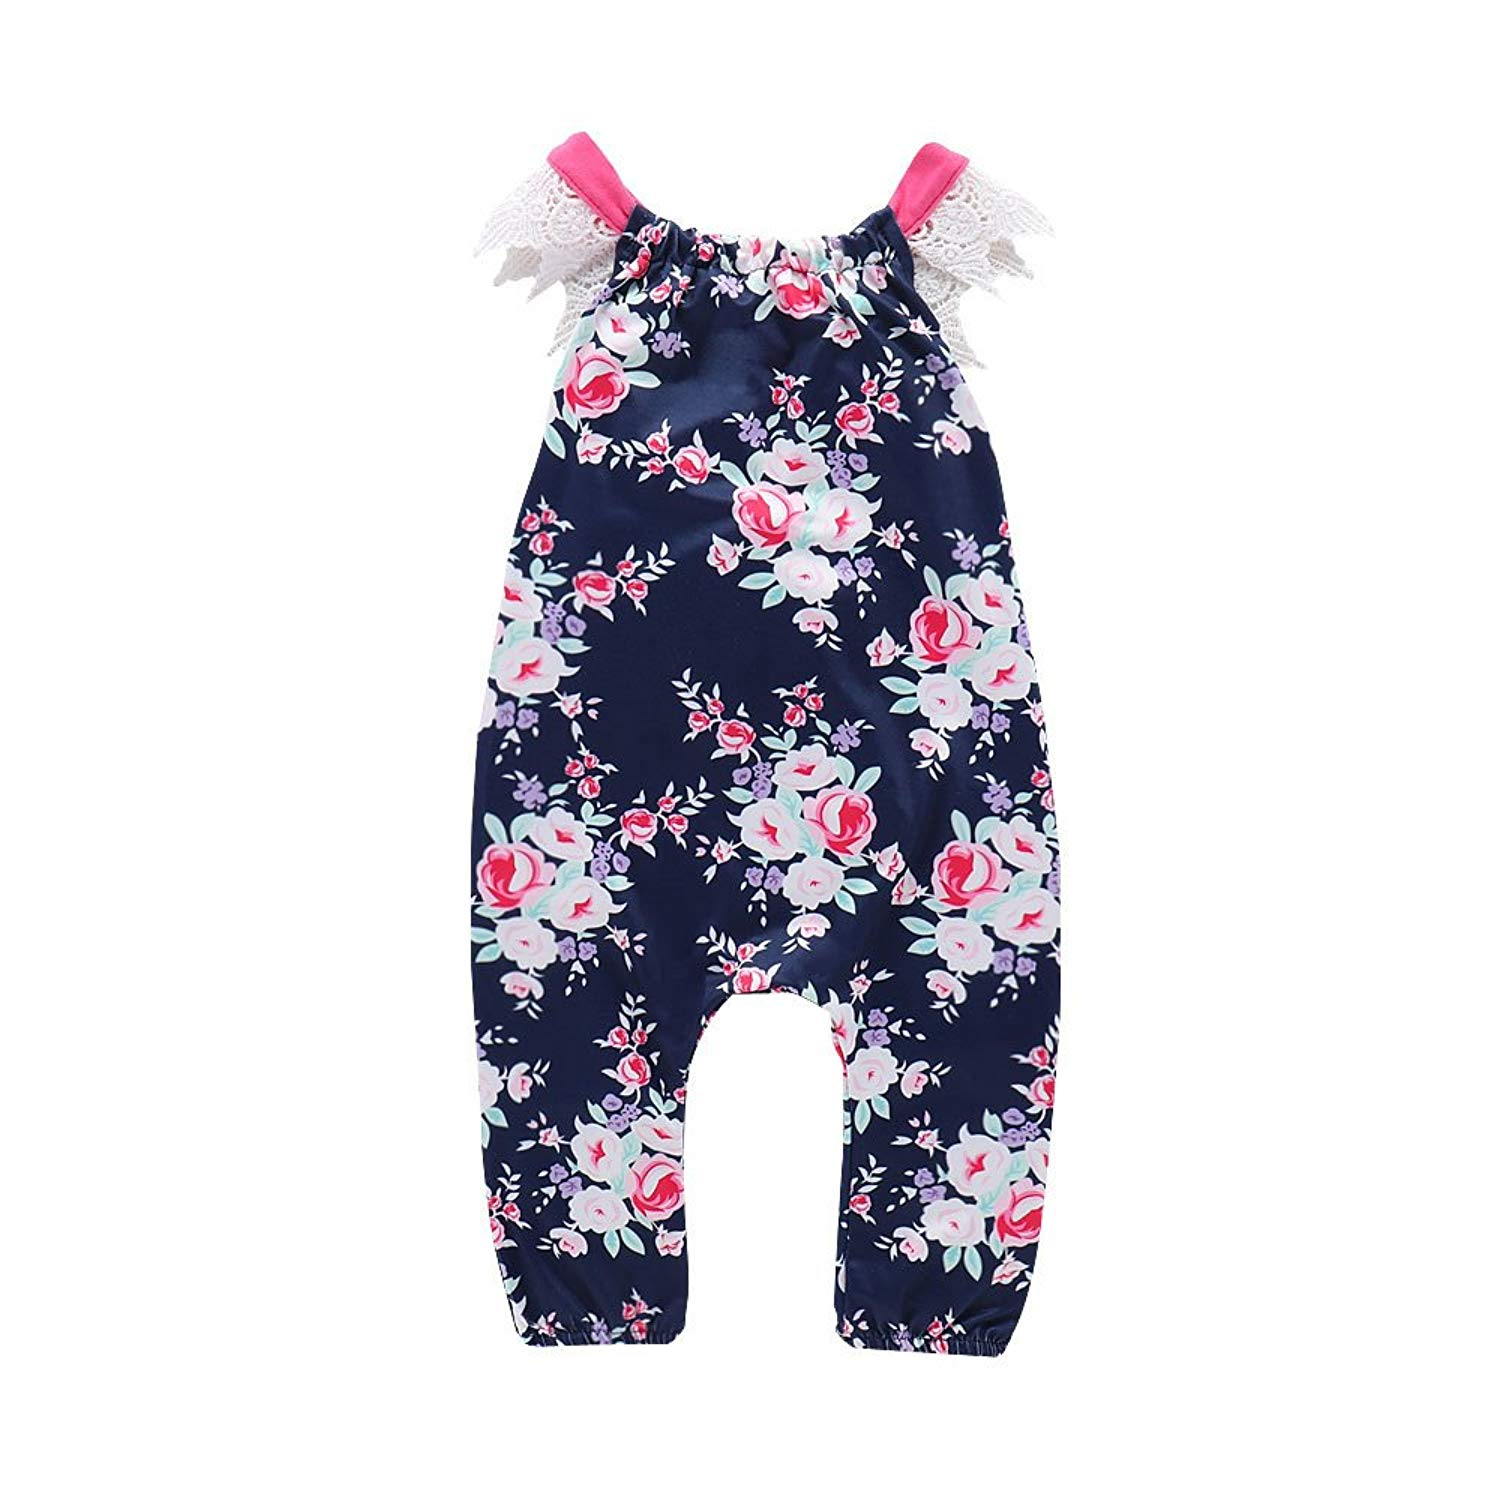 d74bcefcc46f Yamally 9R Baby Girl Rompers 0-24M Baby Girls Rompers Lace Sleeveless Floral  Pajama Summer Jumpsuit Clearance